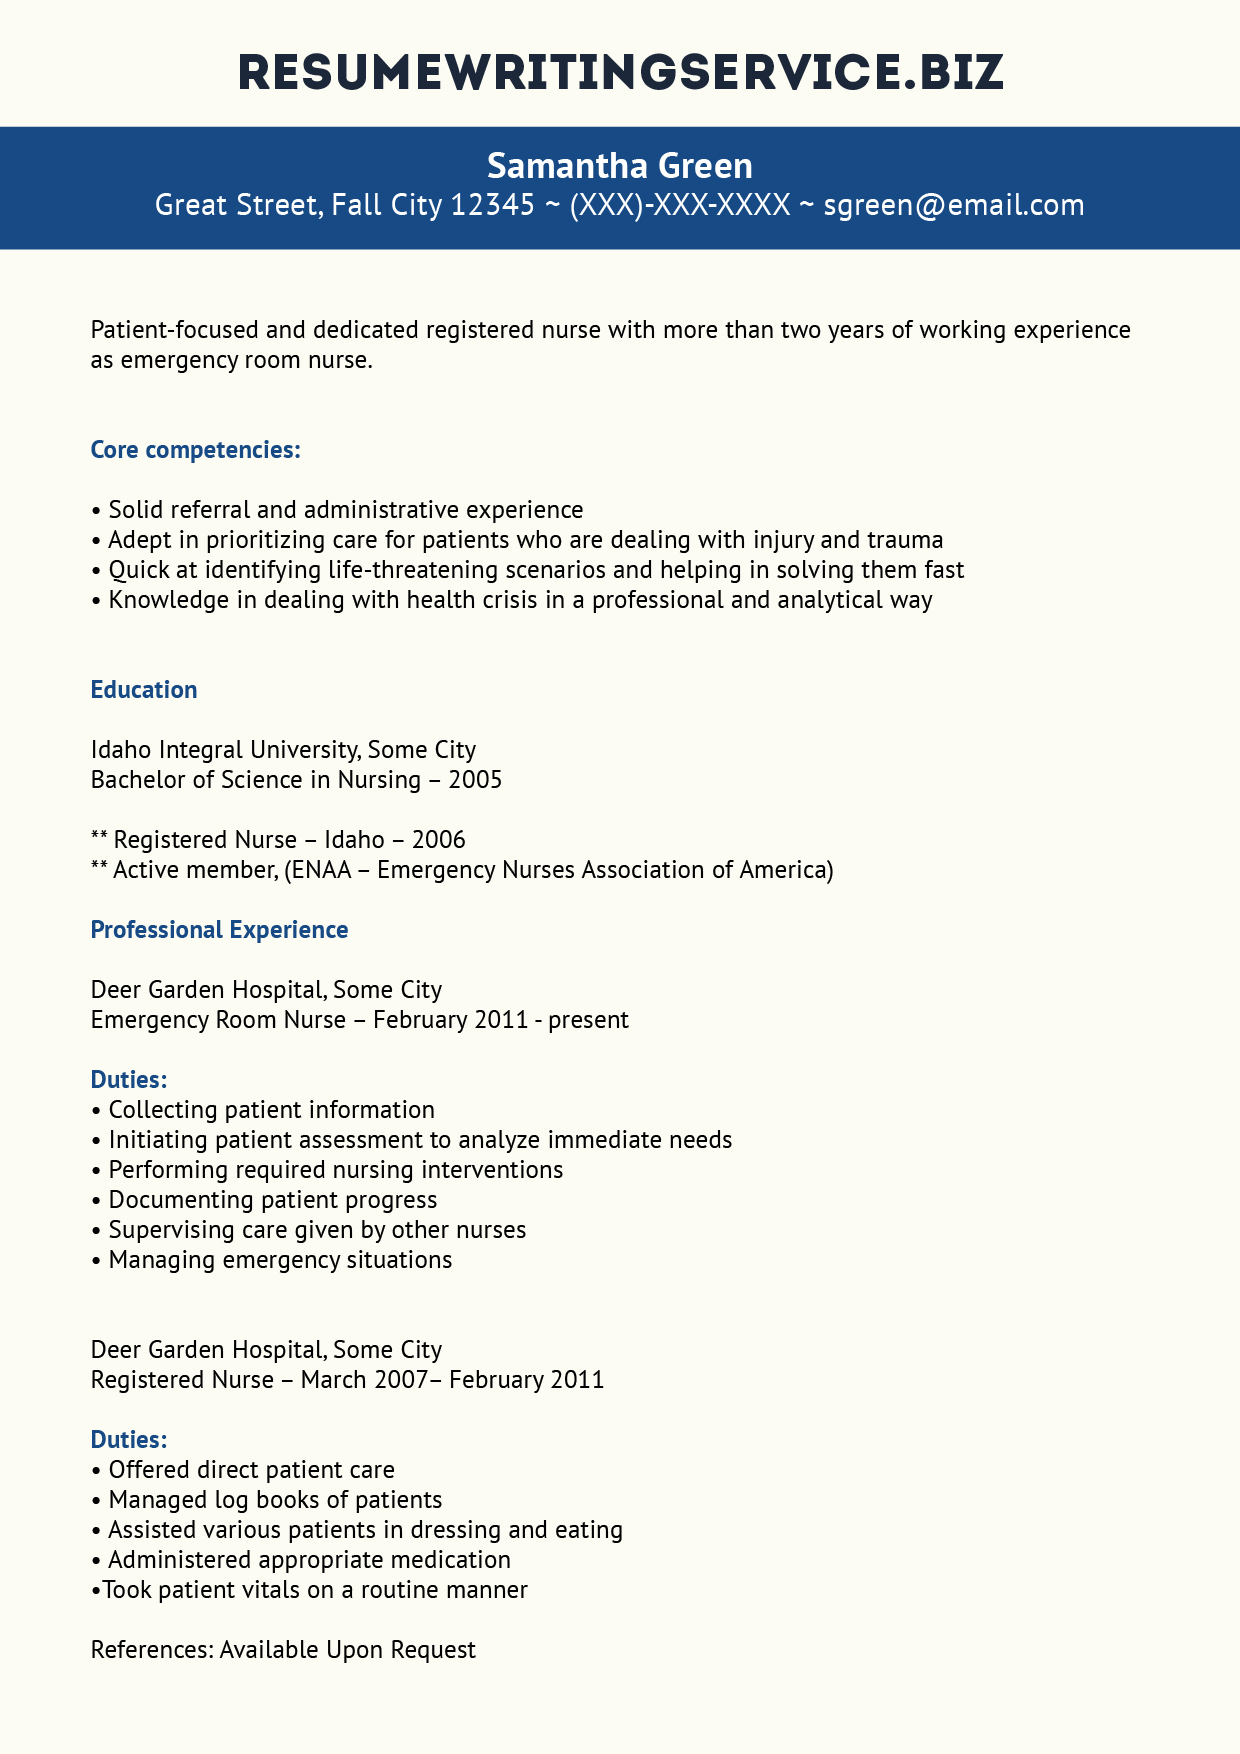 professional er nurse resume example resume writing service